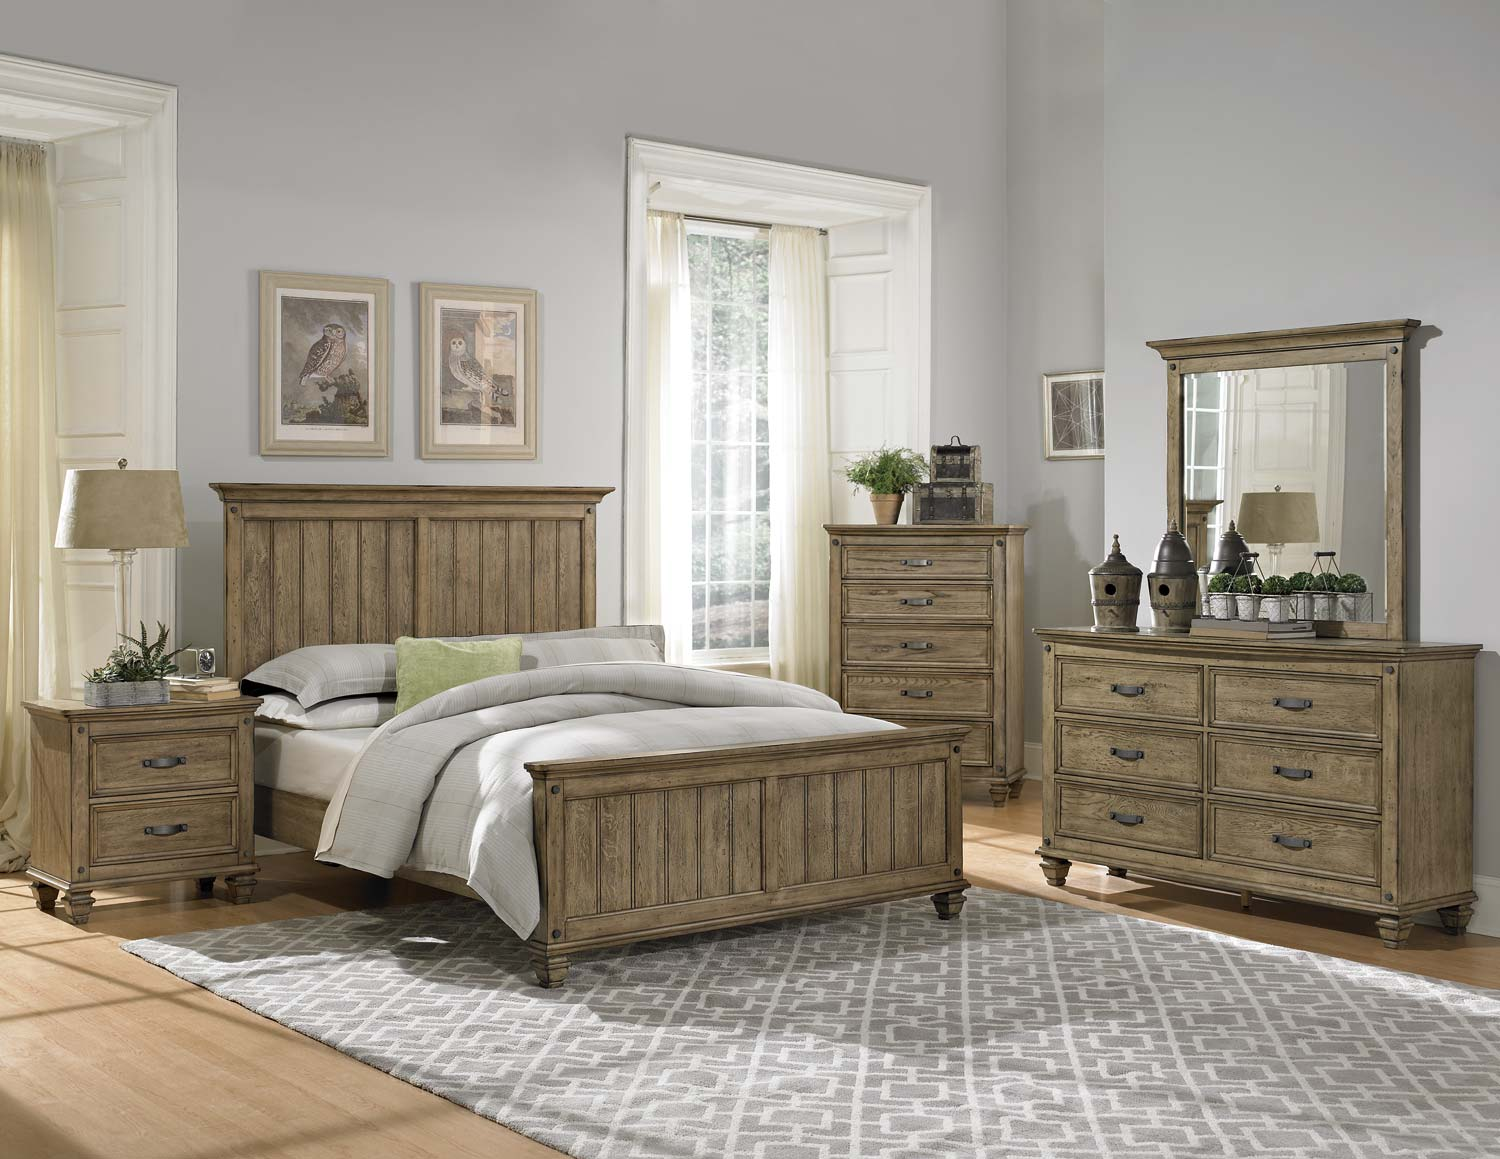 Homelegance Sylvania Bedroom Set   Driftwood Oak. Homelegance Sylvania Bedroom Set   Driftwood Oak 2298 Bed Set